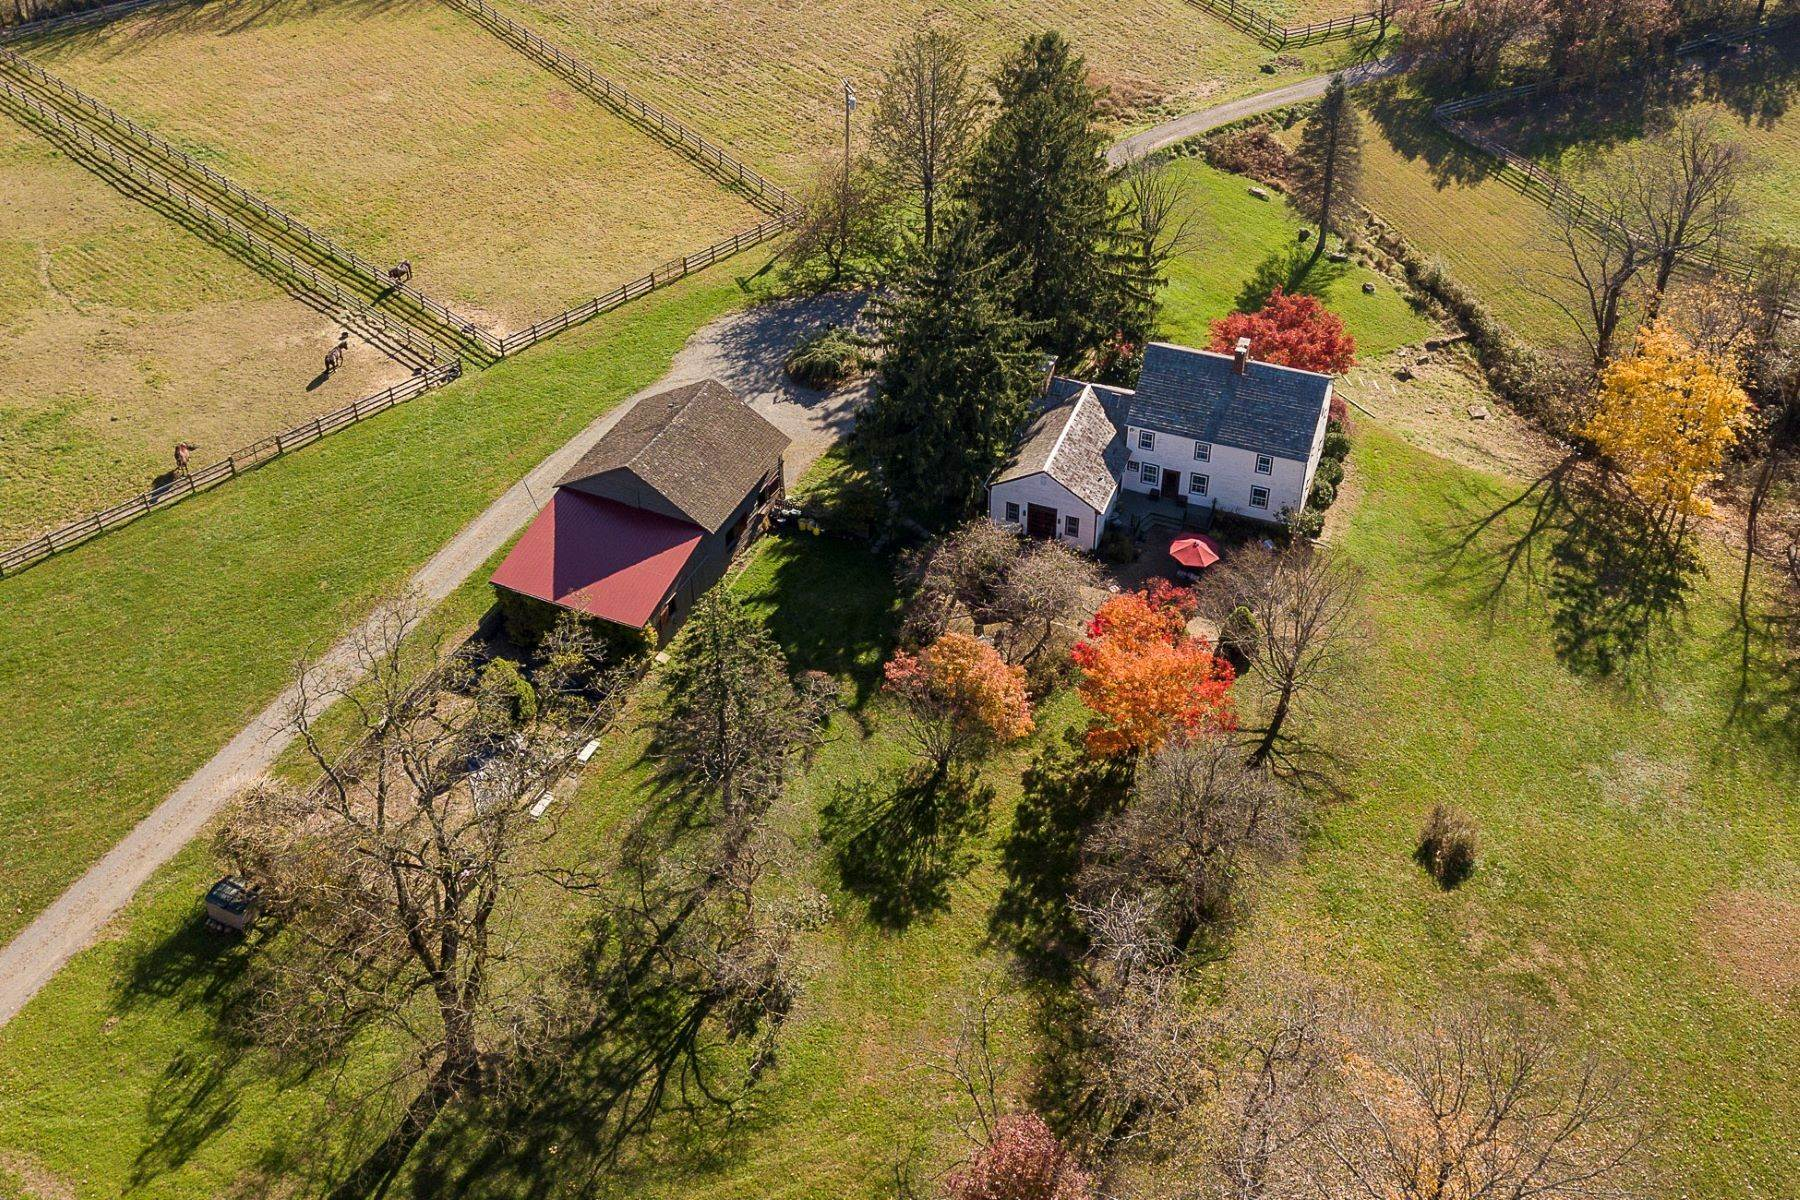 Farm and Ranch Properties for Sale at Longspring Farm: A Country Home Where Dreams Come True 172 Pleasant Valley Road Titusville, New Jersey 08560 United States